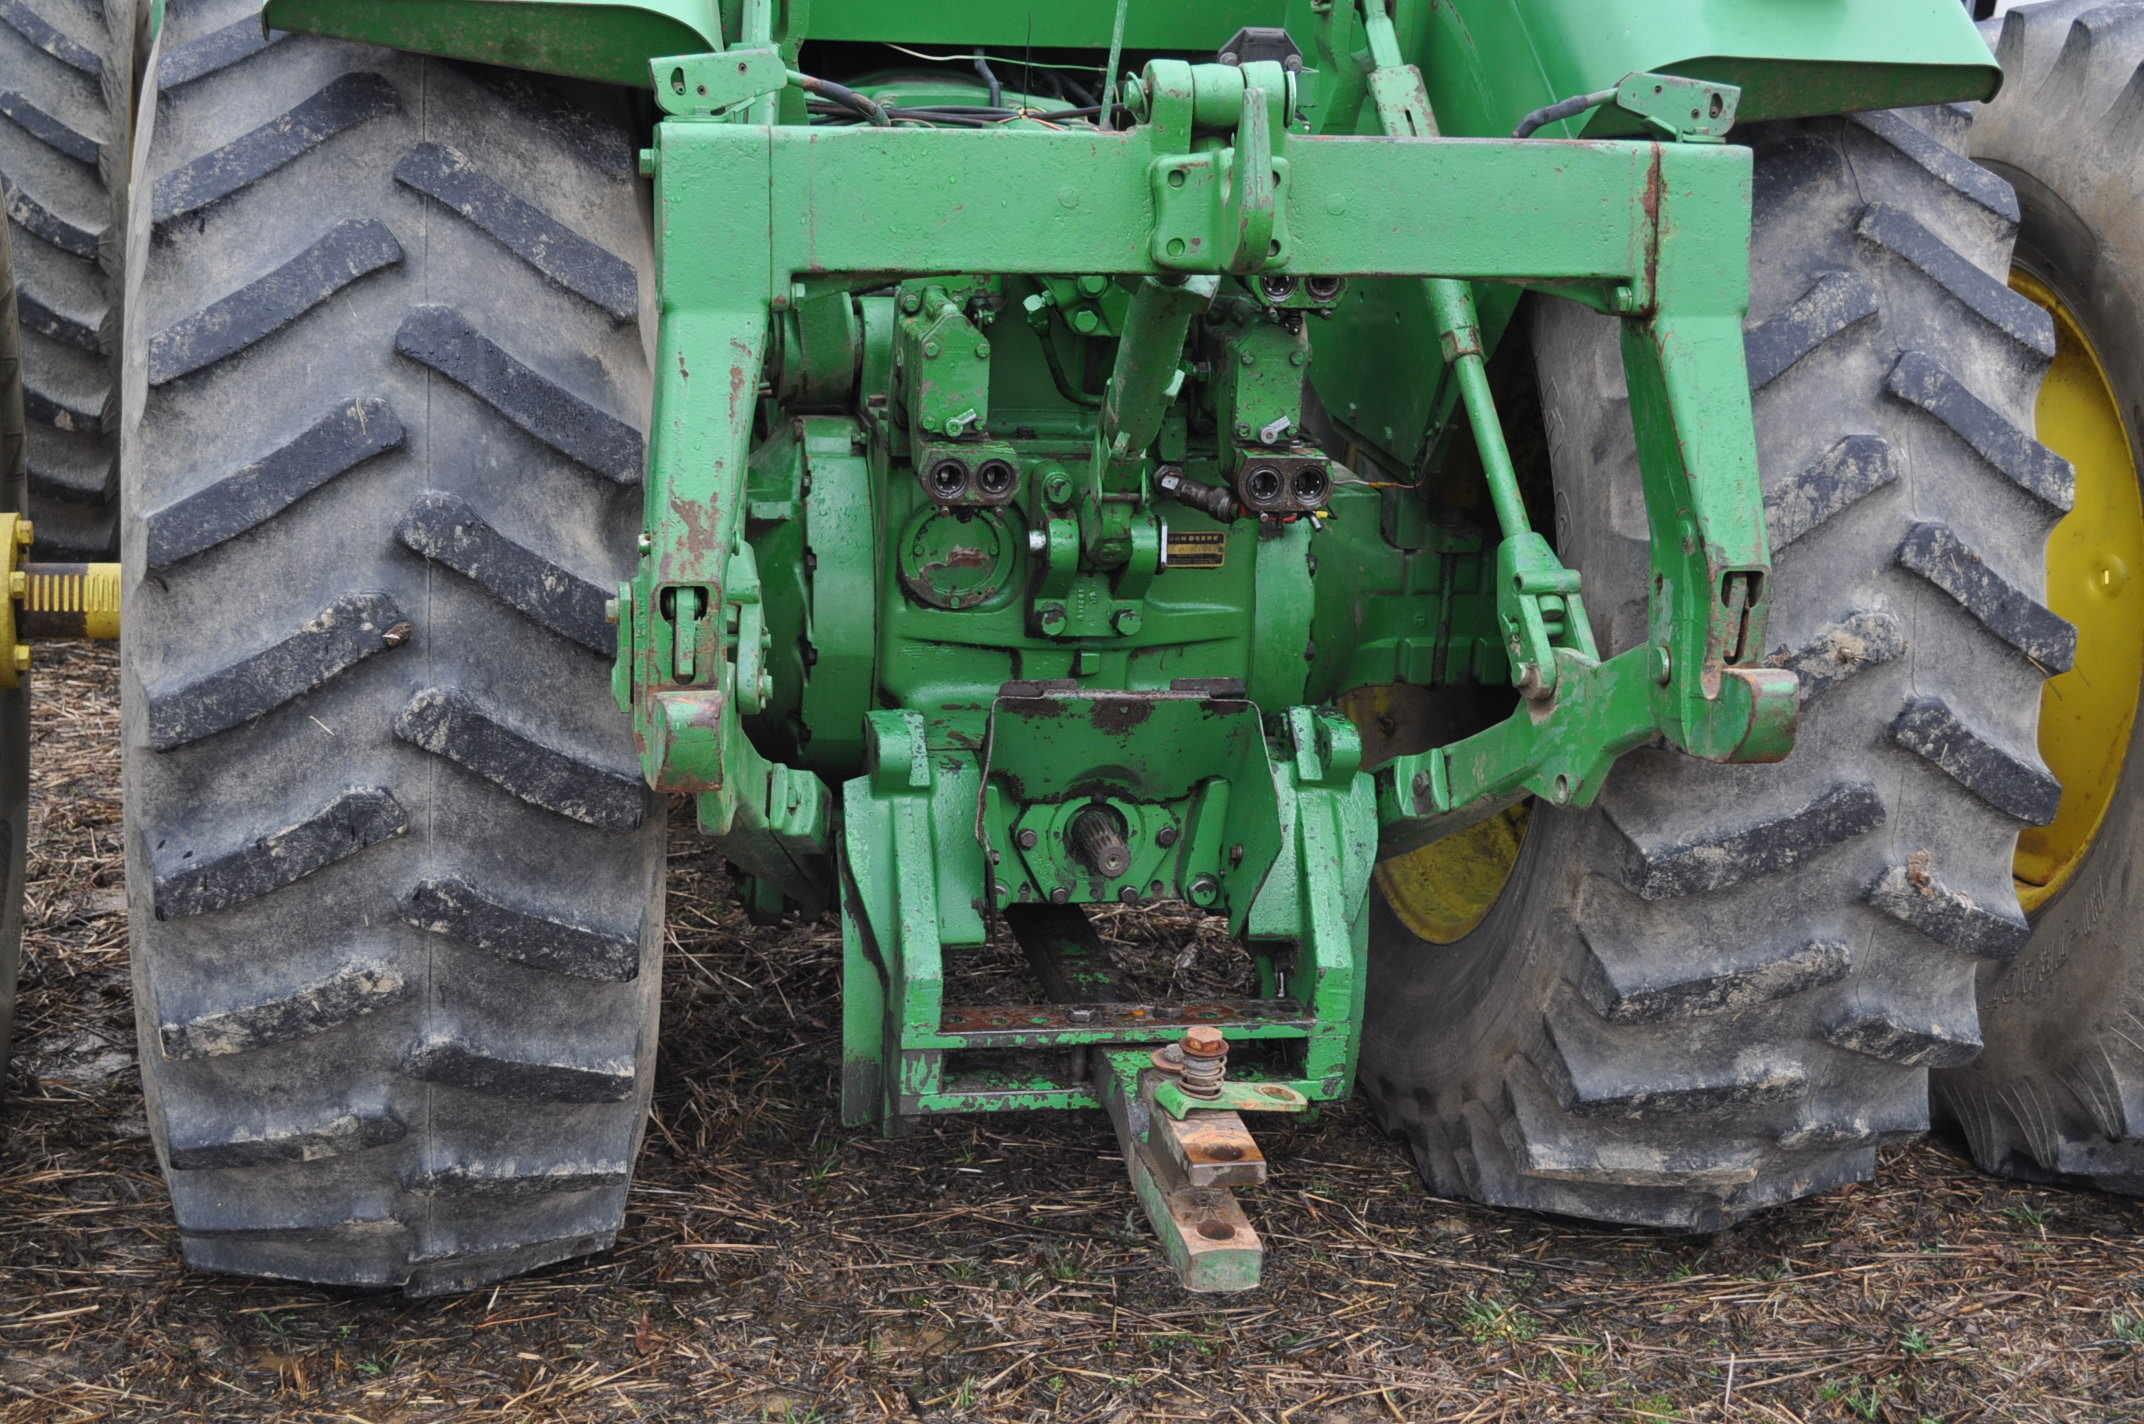 John Deere 8430 tractor, 4WD, diesel, 20.8-34 duals, CHA, Quad range, 3 hyd remotes, 1000 pto, 3 pt, - Image 11 of 19